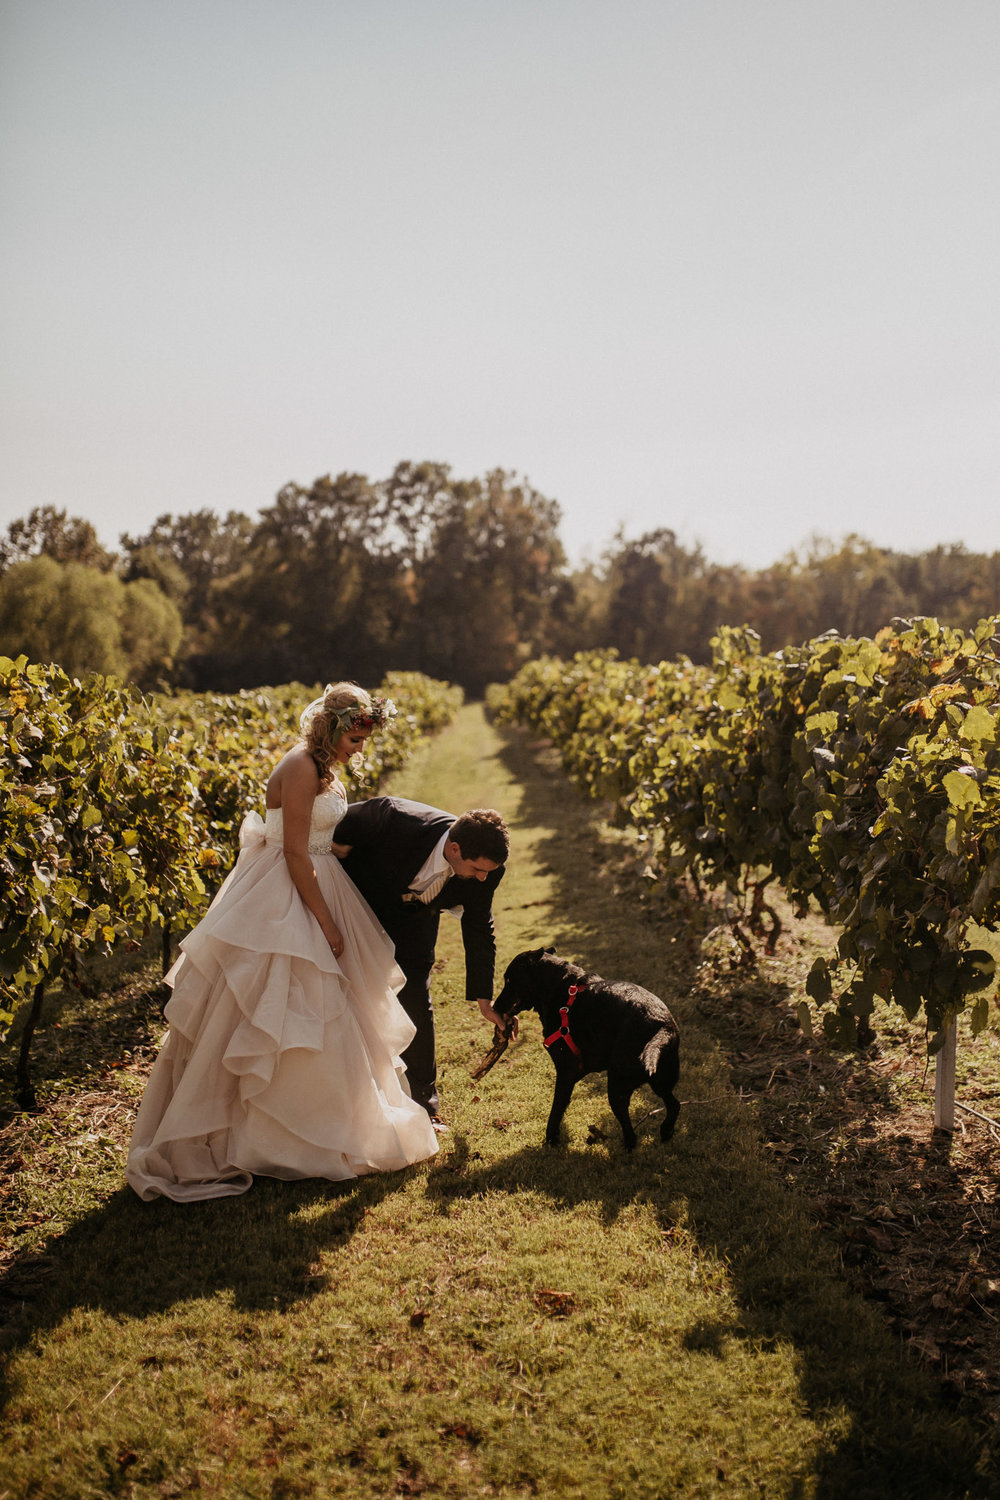 memphis-gatlinburg-nashville-tennessee-wedding-photographer-the-hatches-utah-colorado-washington-arizona-oregon-yosemite-national-park-elopement-adventure-emotional-journalistic-bohemian-florals-minimalistic-winery-elegant